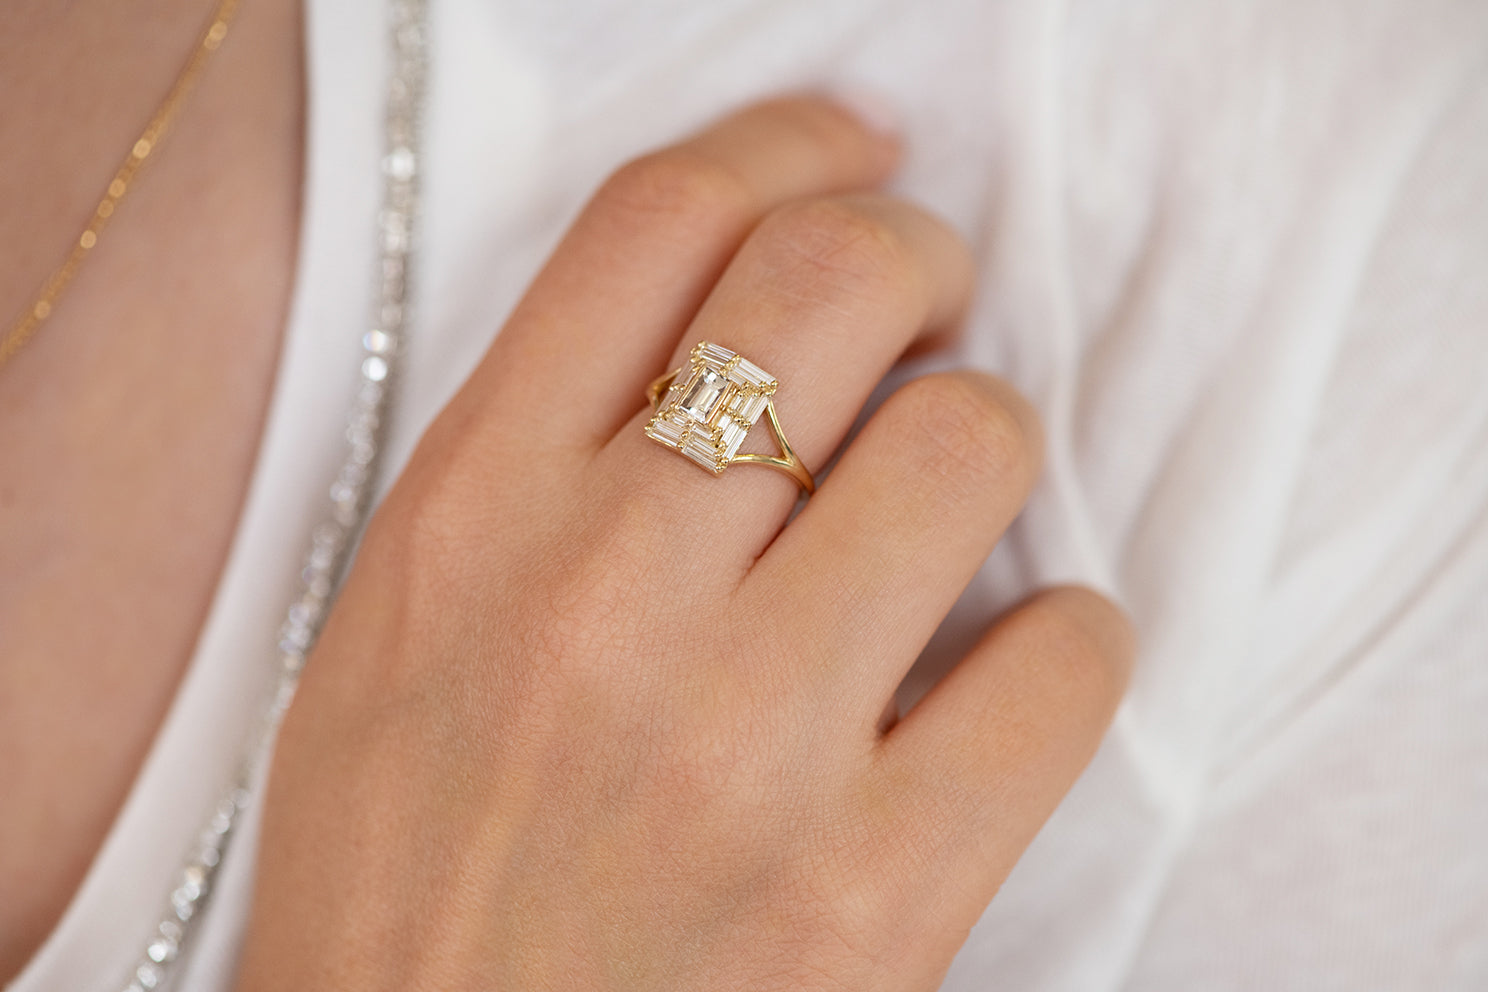 Baguette Cut Engagement Ring - Baguette Temple Ring on Hand Alternate View